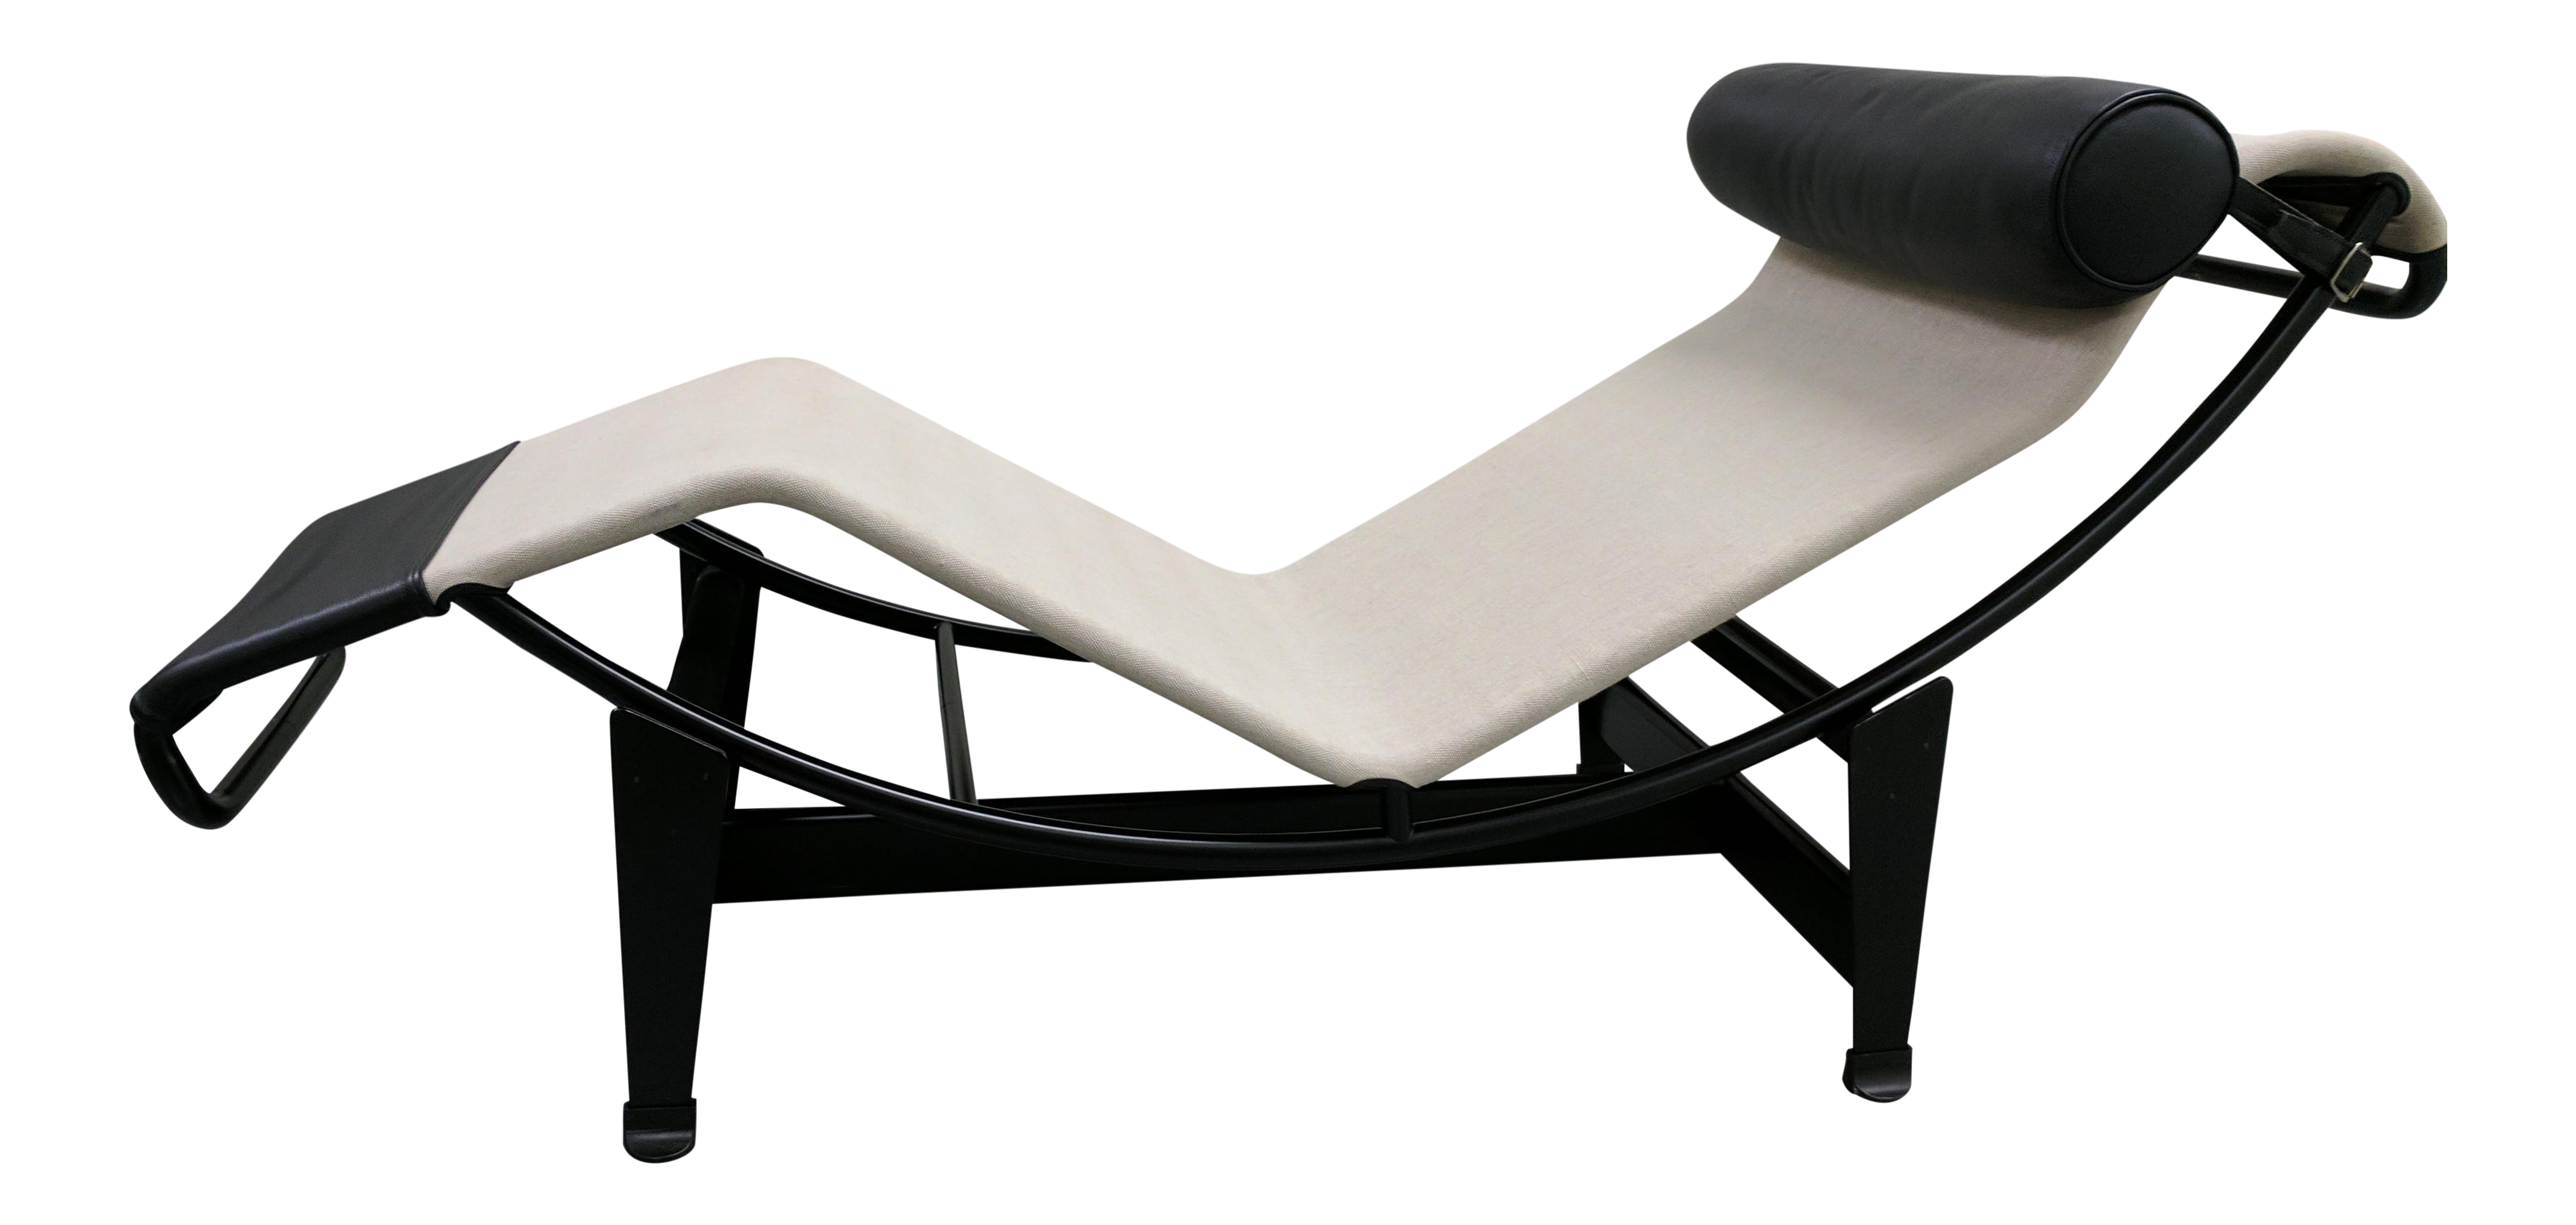 Le corbusier designed lc4 chaise longue chairish for Chaise longe le corbusier